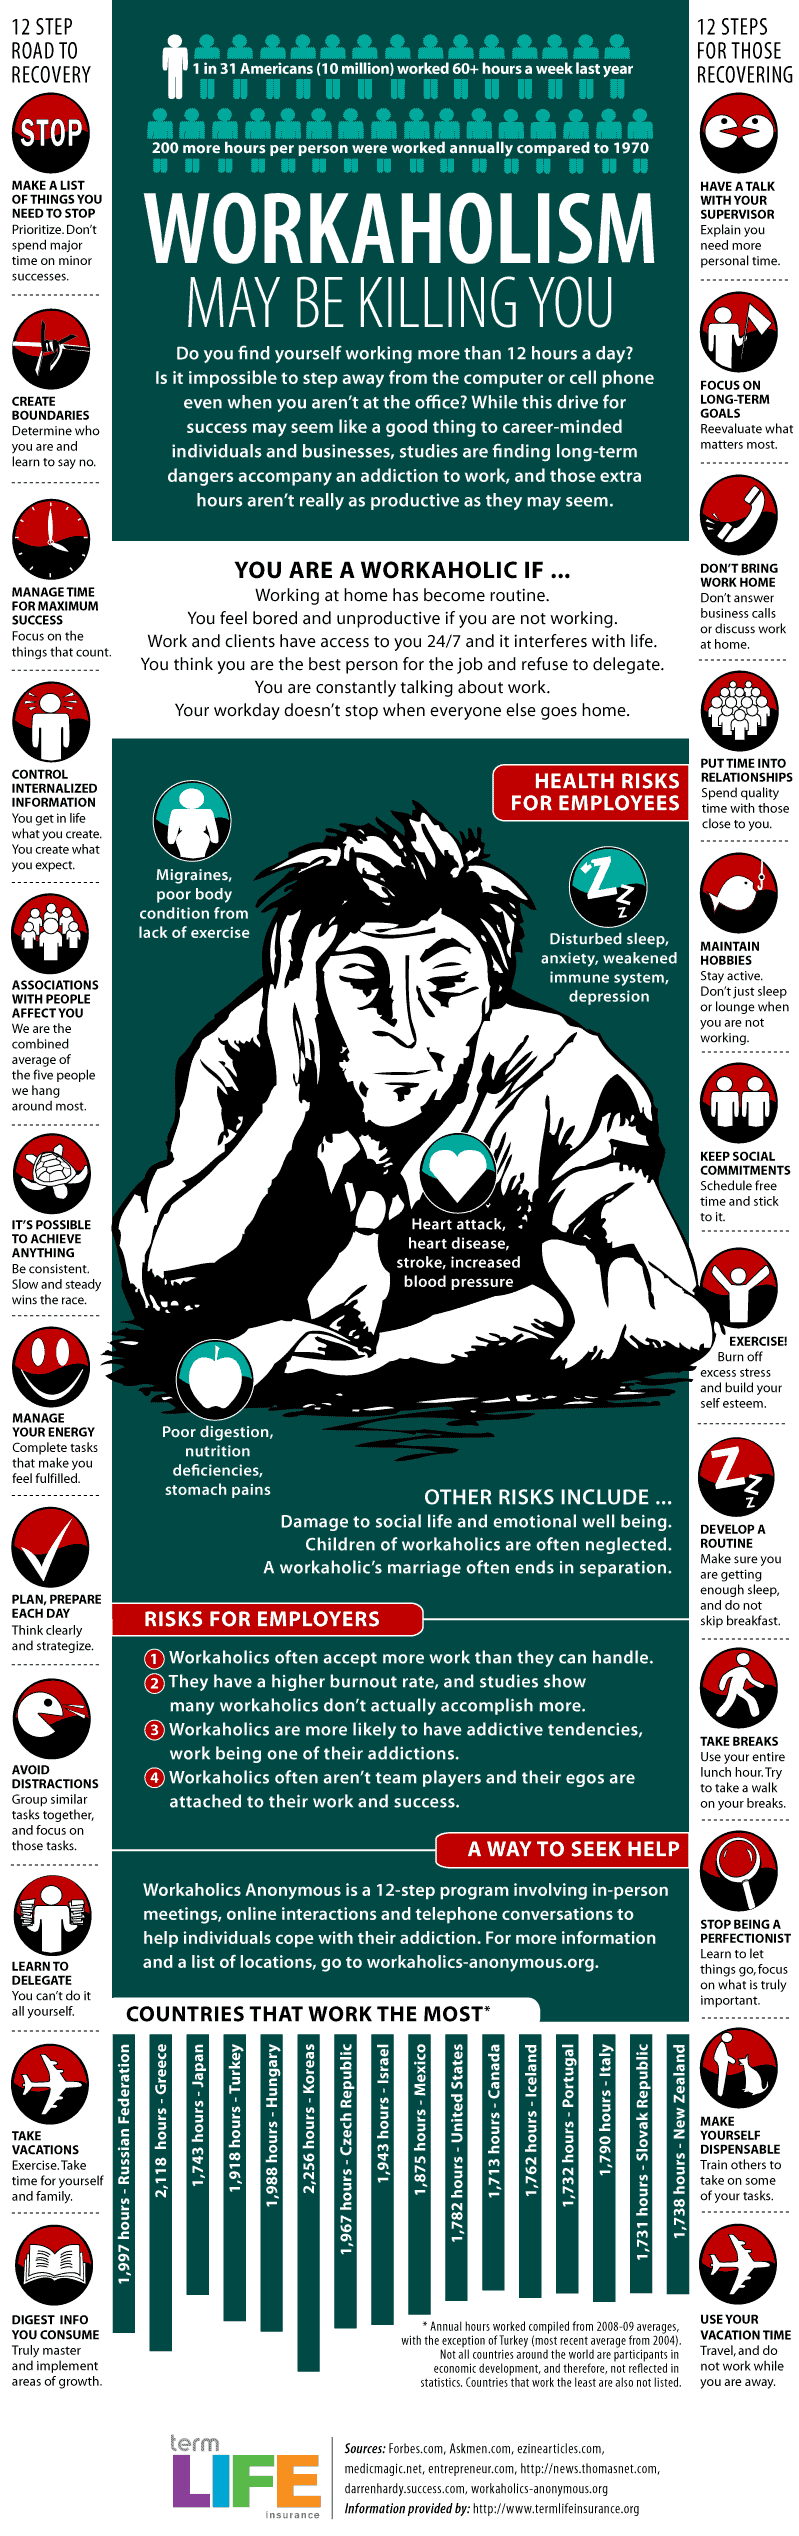 Workaholism May Be Killing You (Infographic)